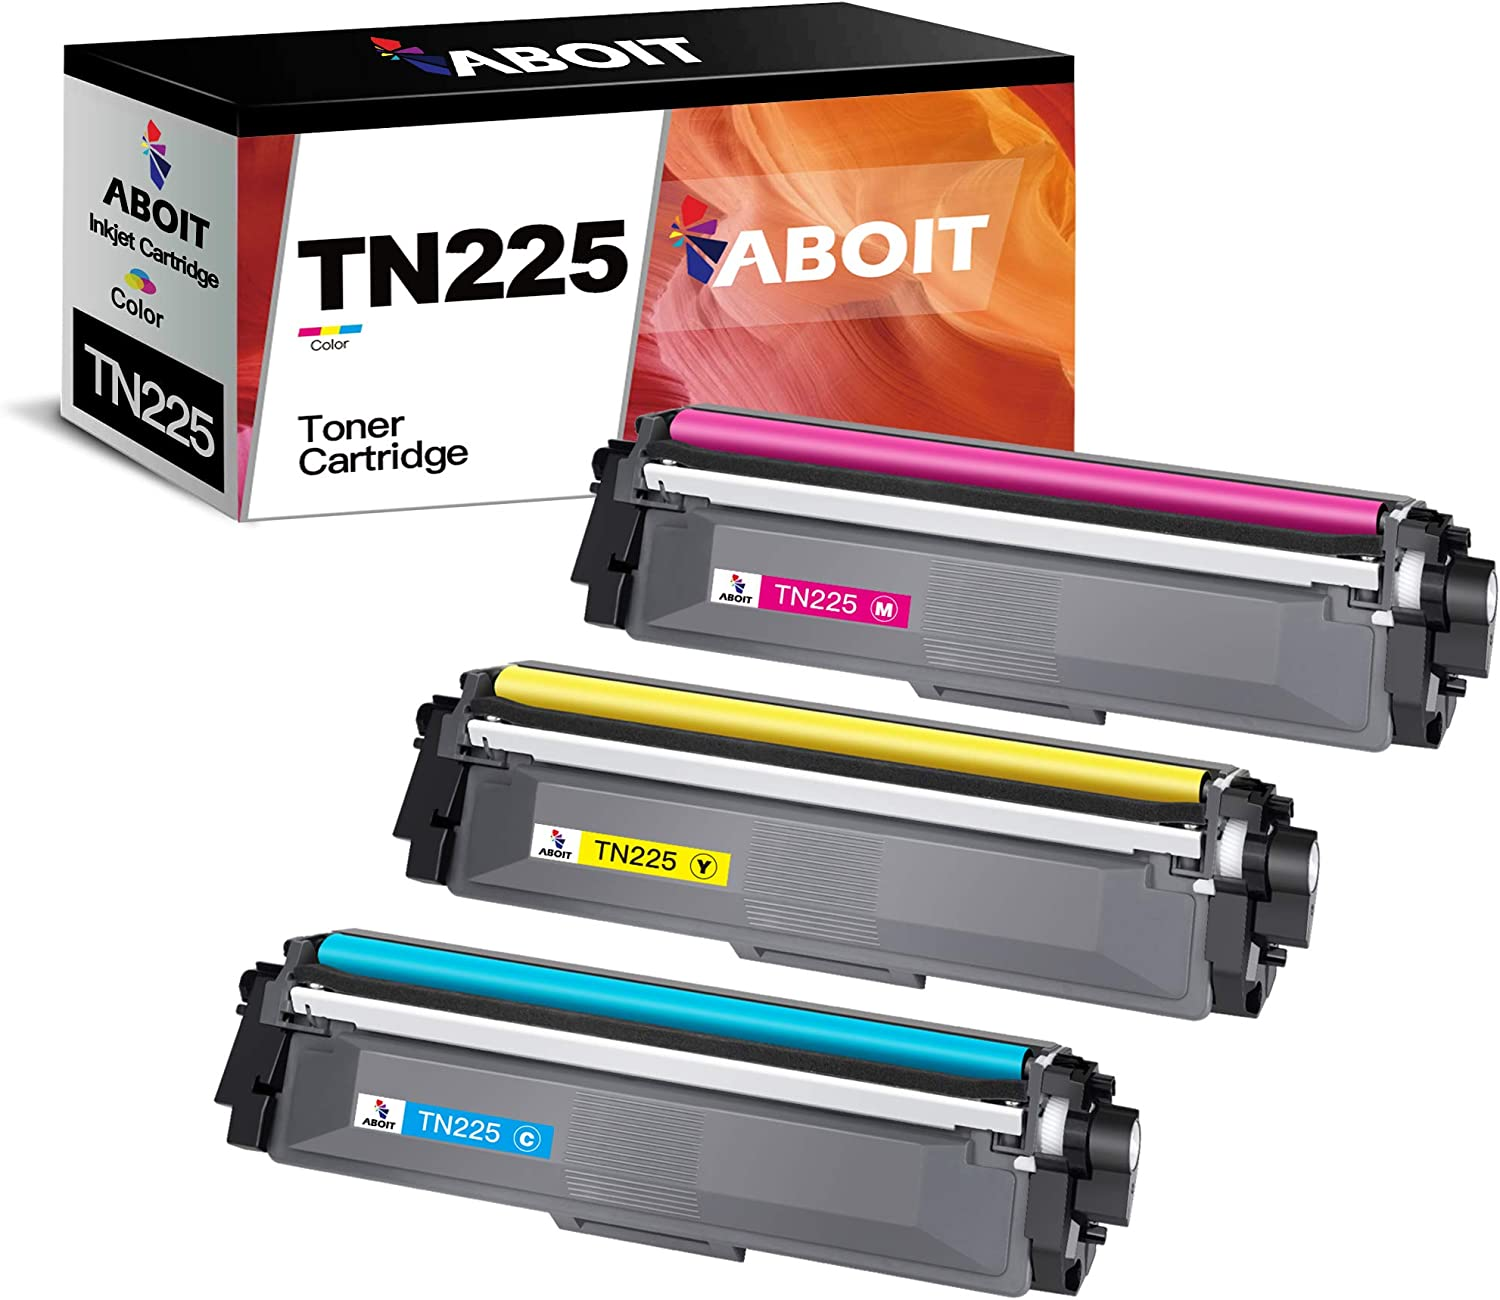 ABOIT Compatible Toner Cartridge Replacement for Brother TN225 TN-225 TN221 TN-221 with Brother HL-3170CDW HL-3140CW HL-3180 MFC-9130CW MFC-9330CDW MFC-9340CDW Printer Tray (Cyan, Magenta, Yellow)